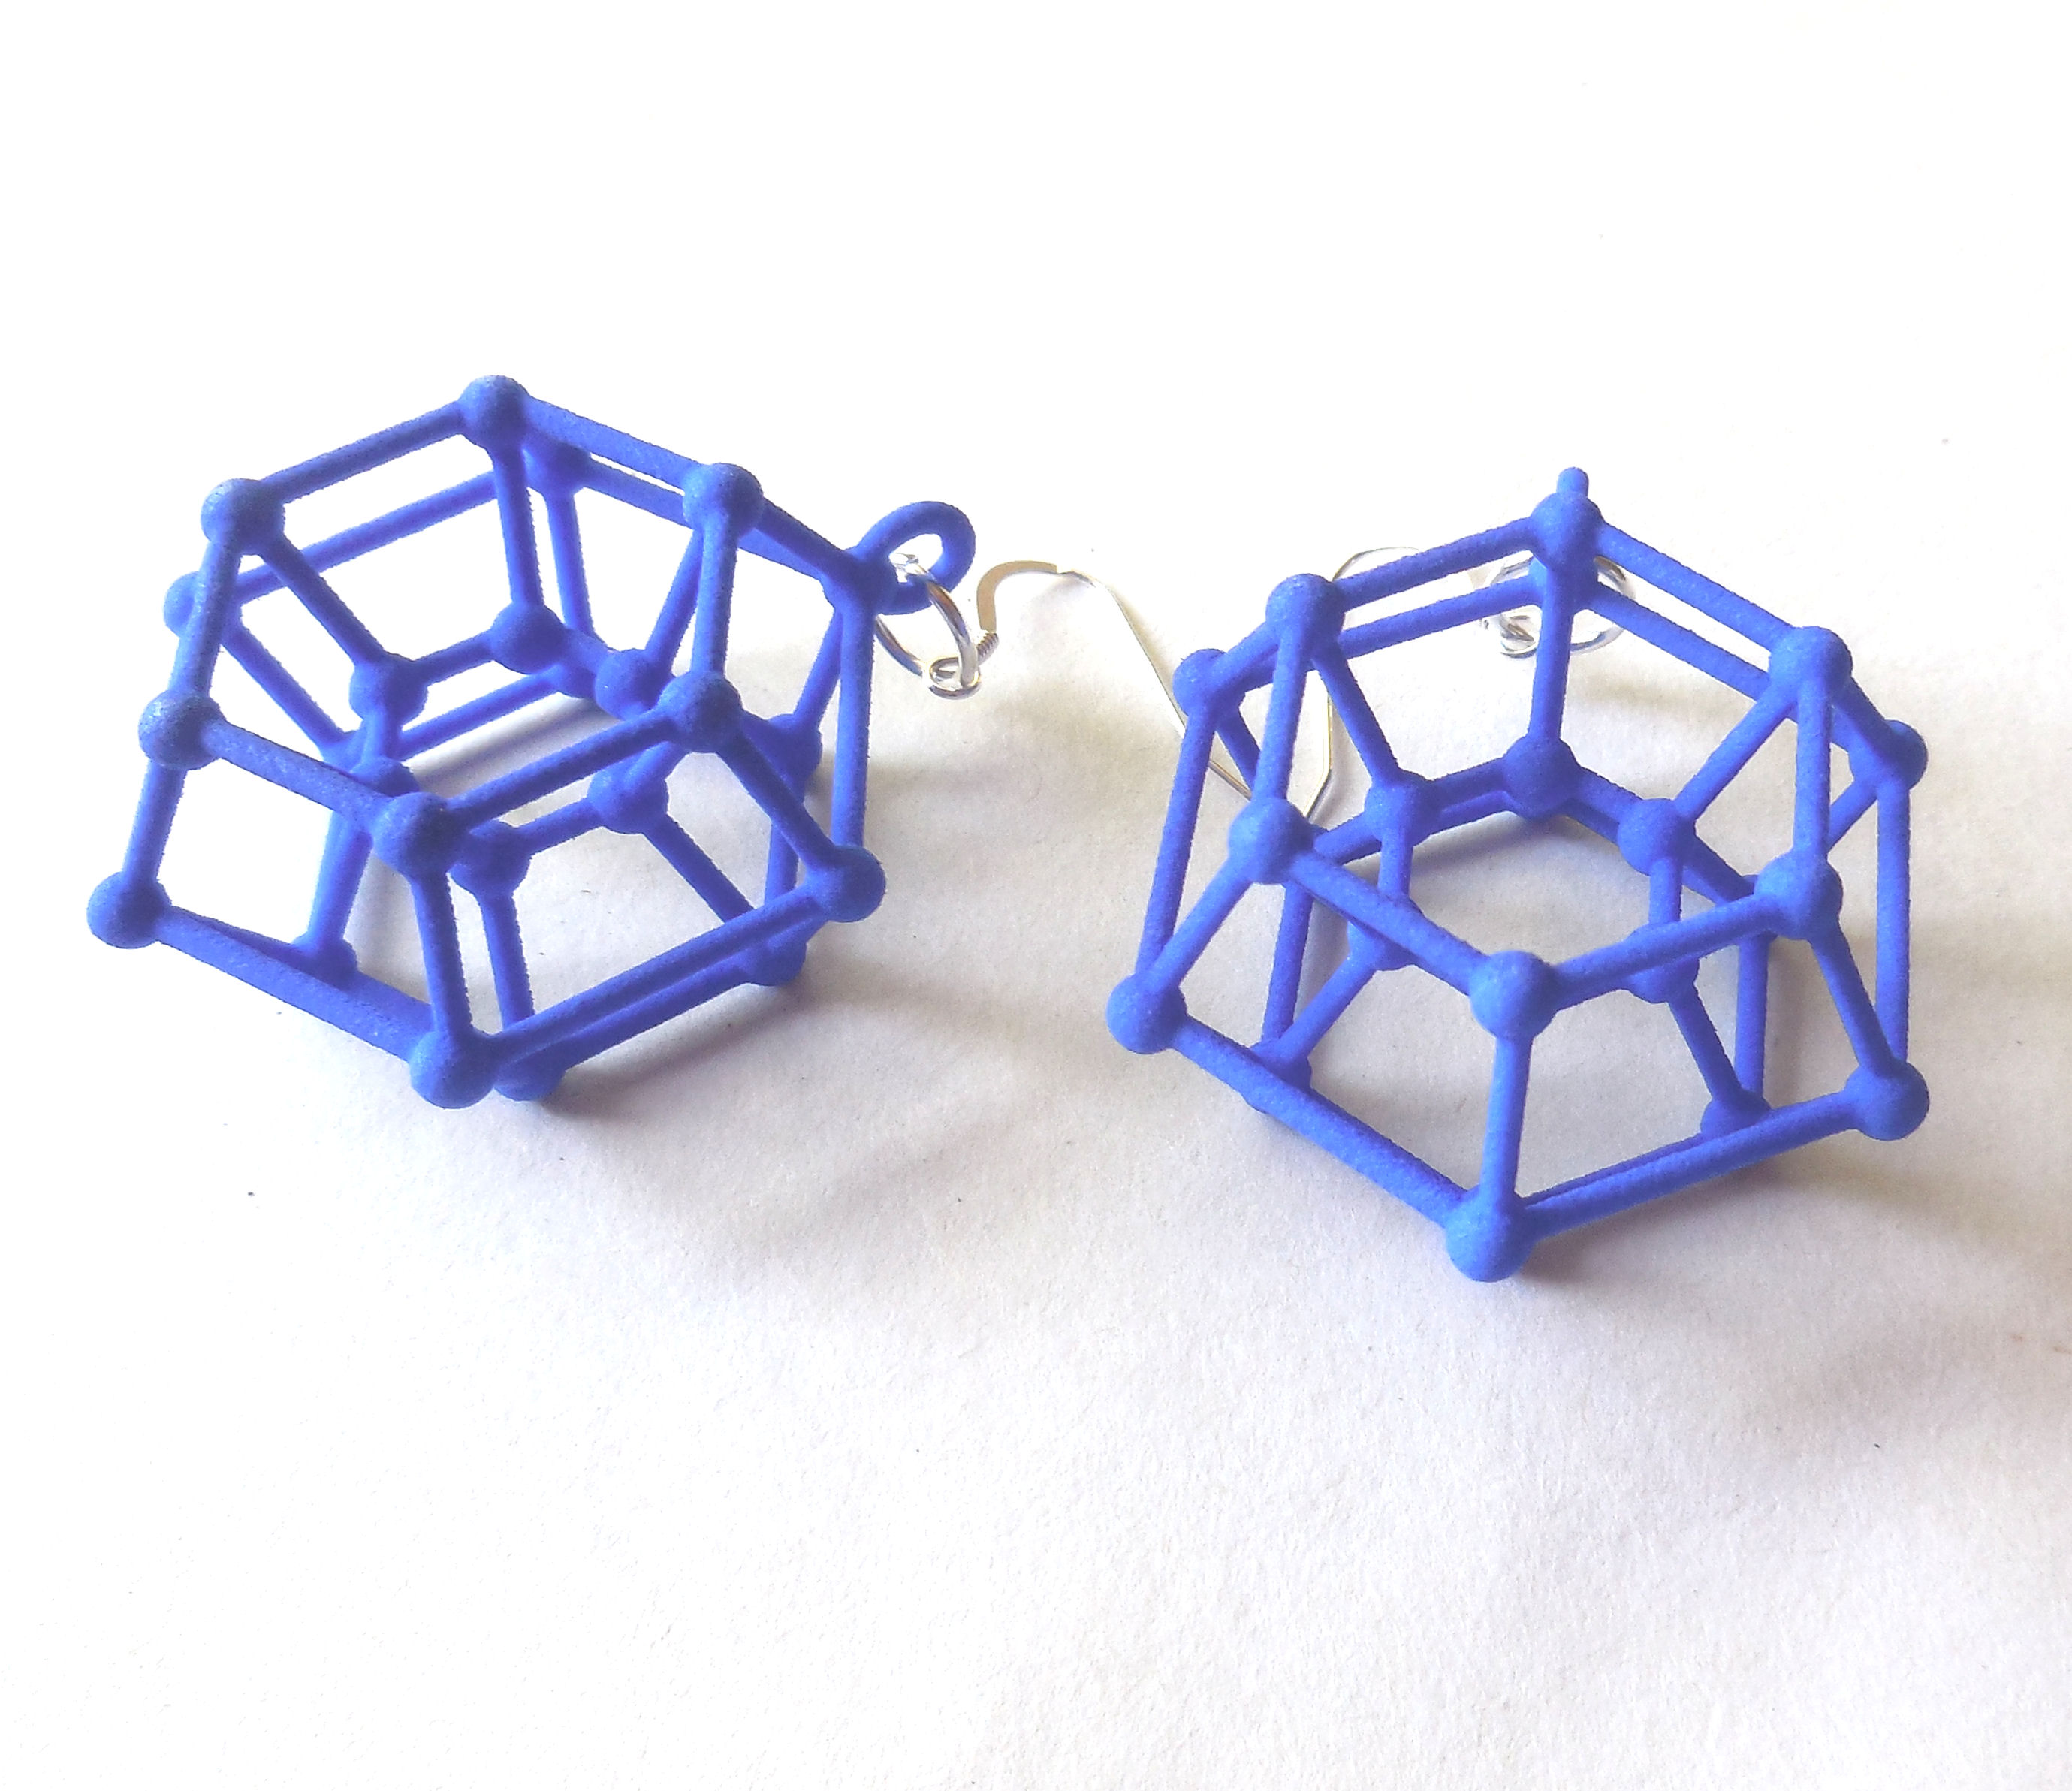 New 3D printed plastic earrings for the Etsy shop